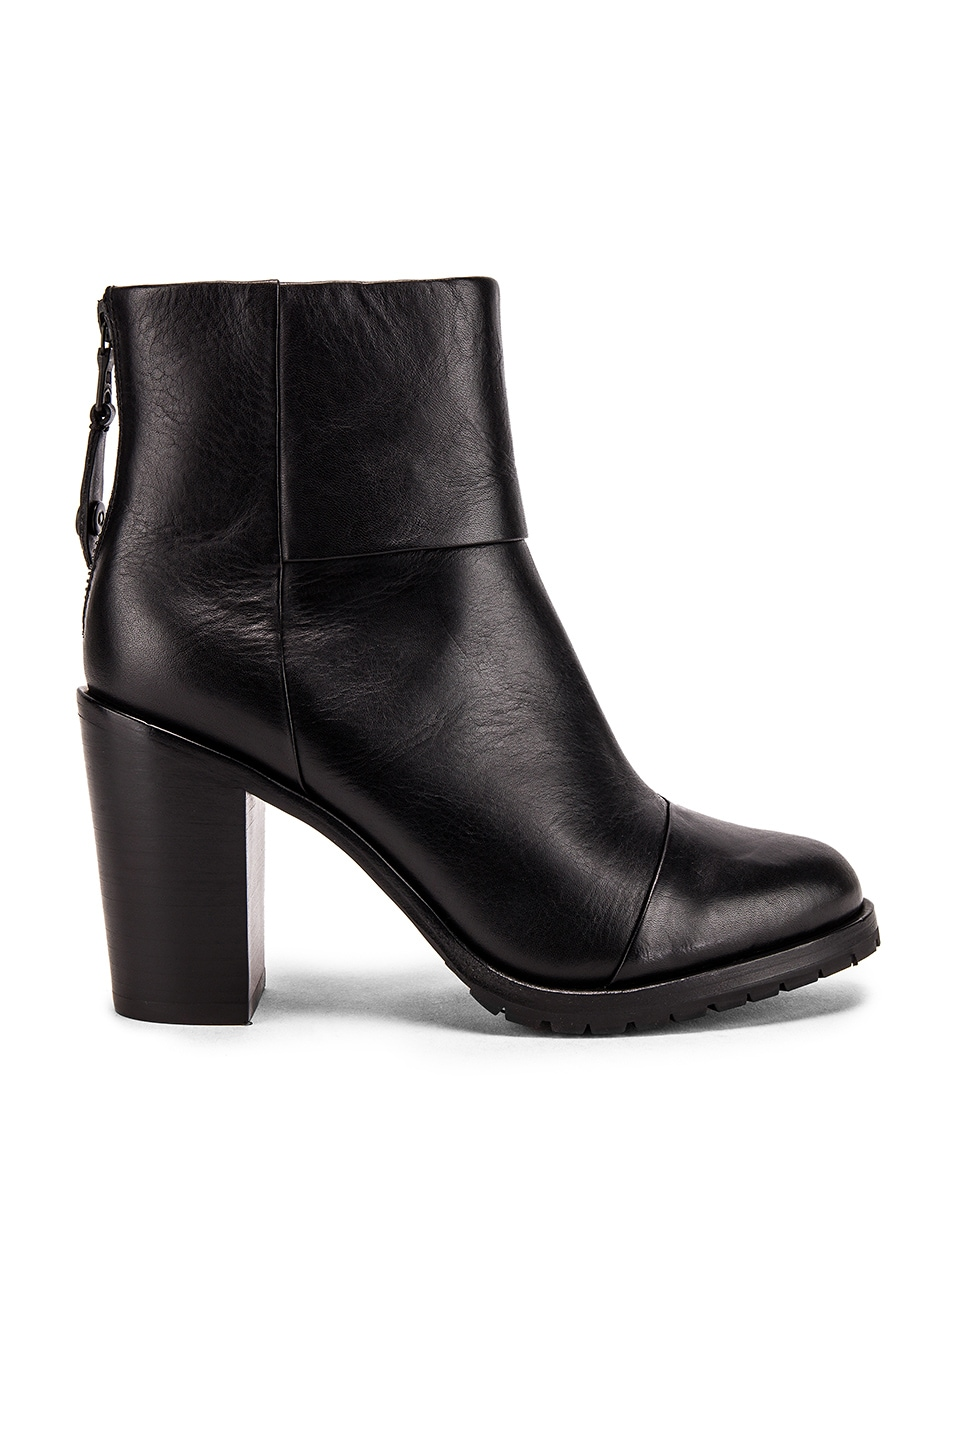 Rag & Bone Newbury 2.0 Bootie in Black